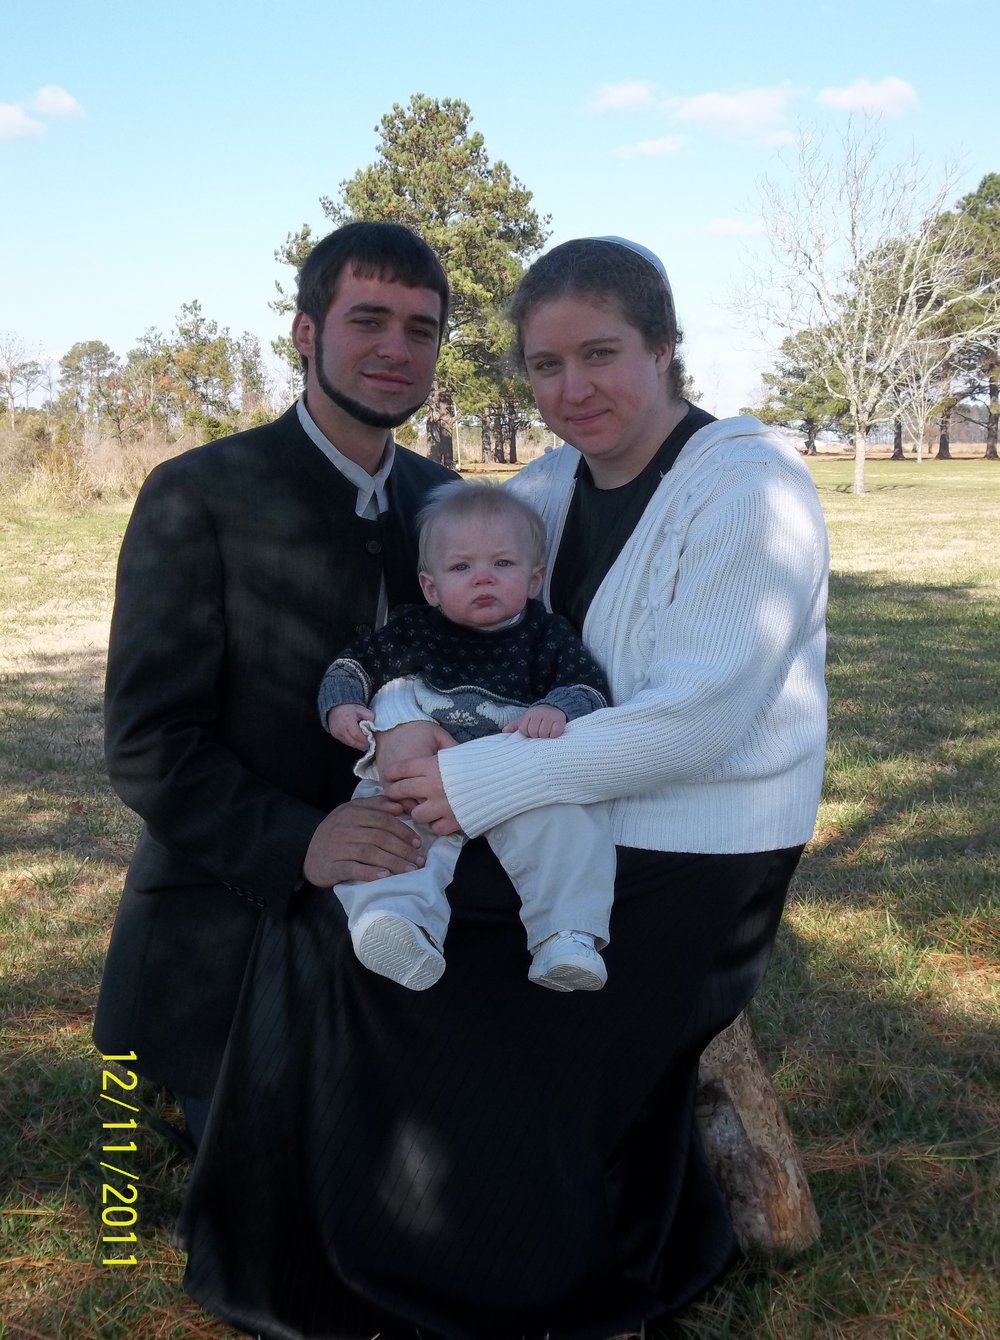 JOSIAH - 3rd - Phil, Debi, and baby JOSIAH from North Carolina